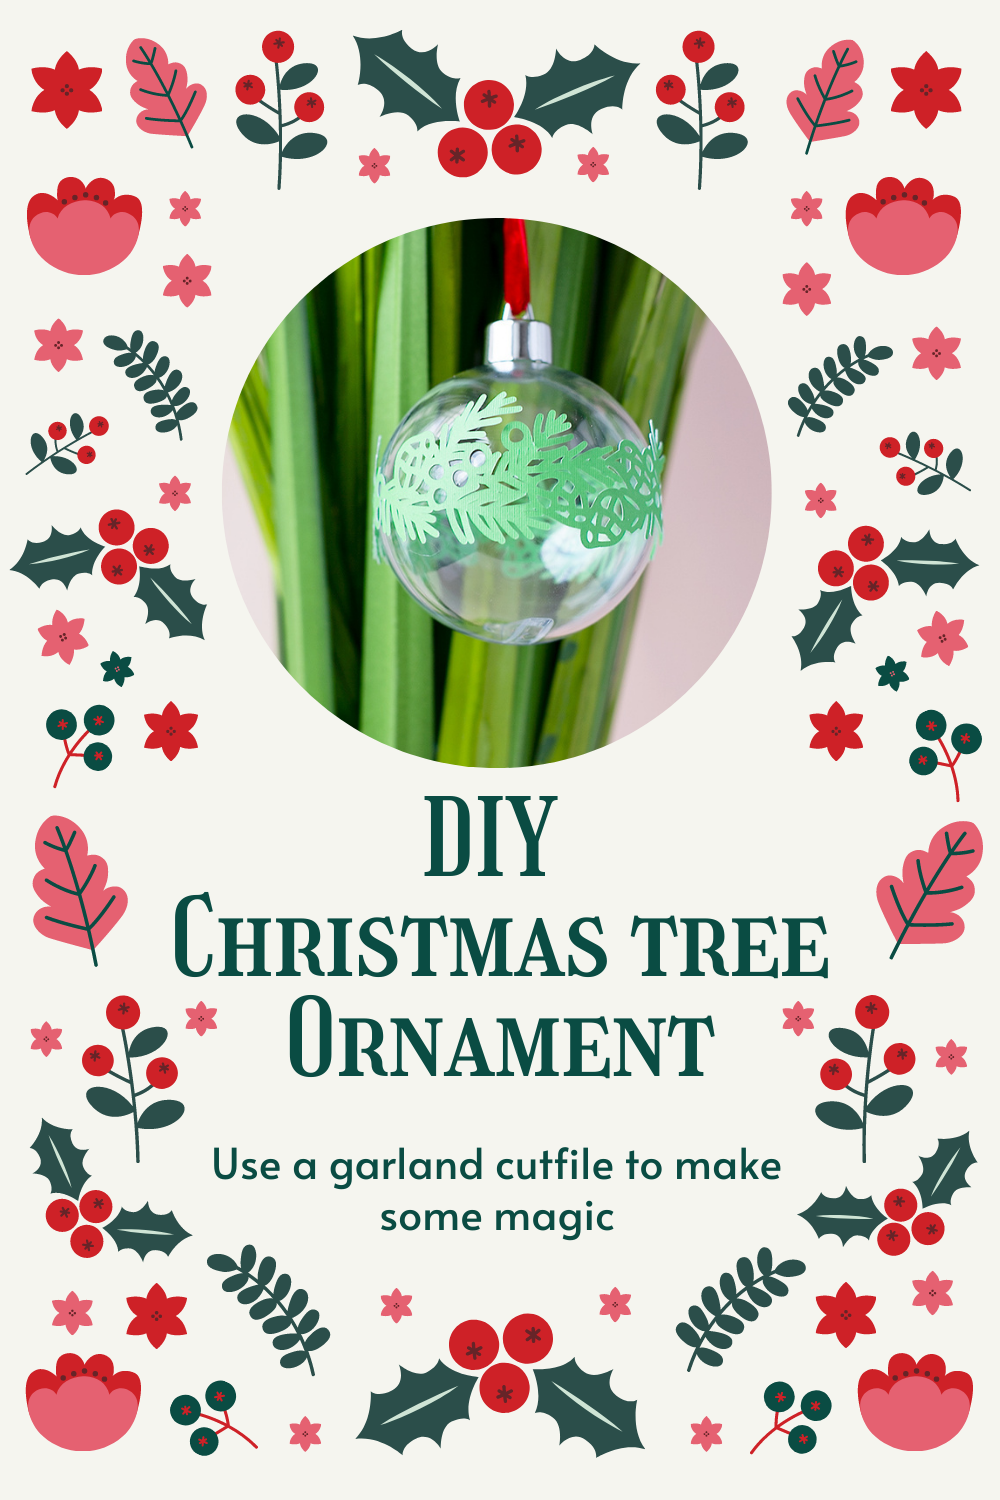 A DIY Christmas tree ornament with a garland